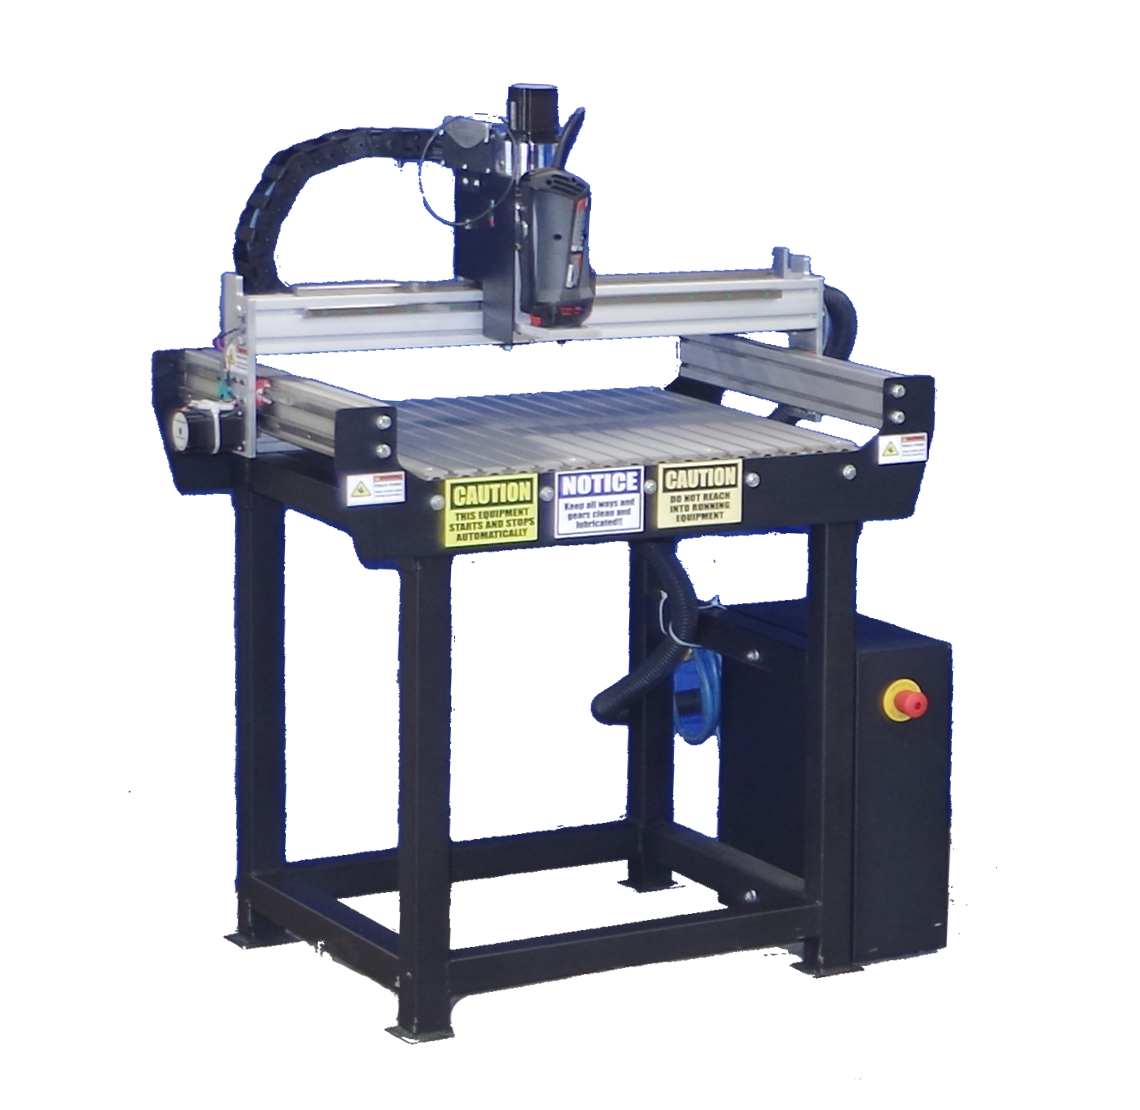 Cnc Router Table >> Cnc Routers Cnc Router Tables To Fit Your Job Built At Our